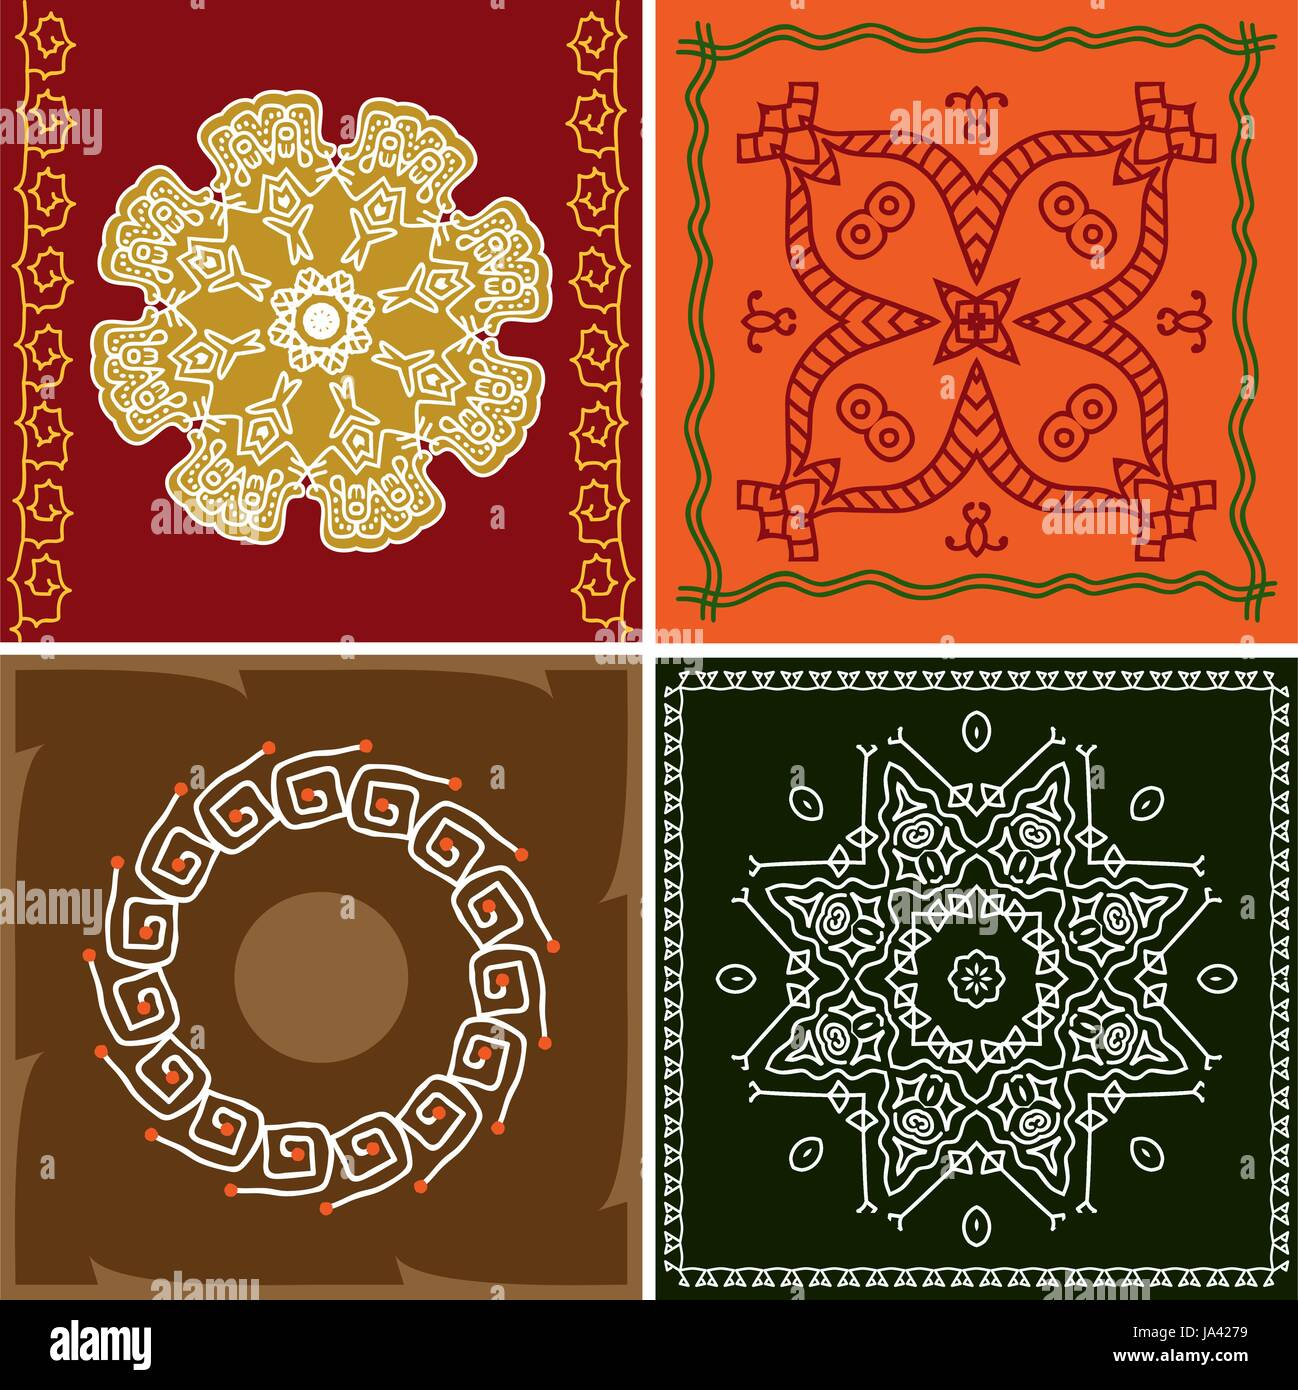 Folk Tribal Design Motif Wall Painting Vector Art Stock Vector